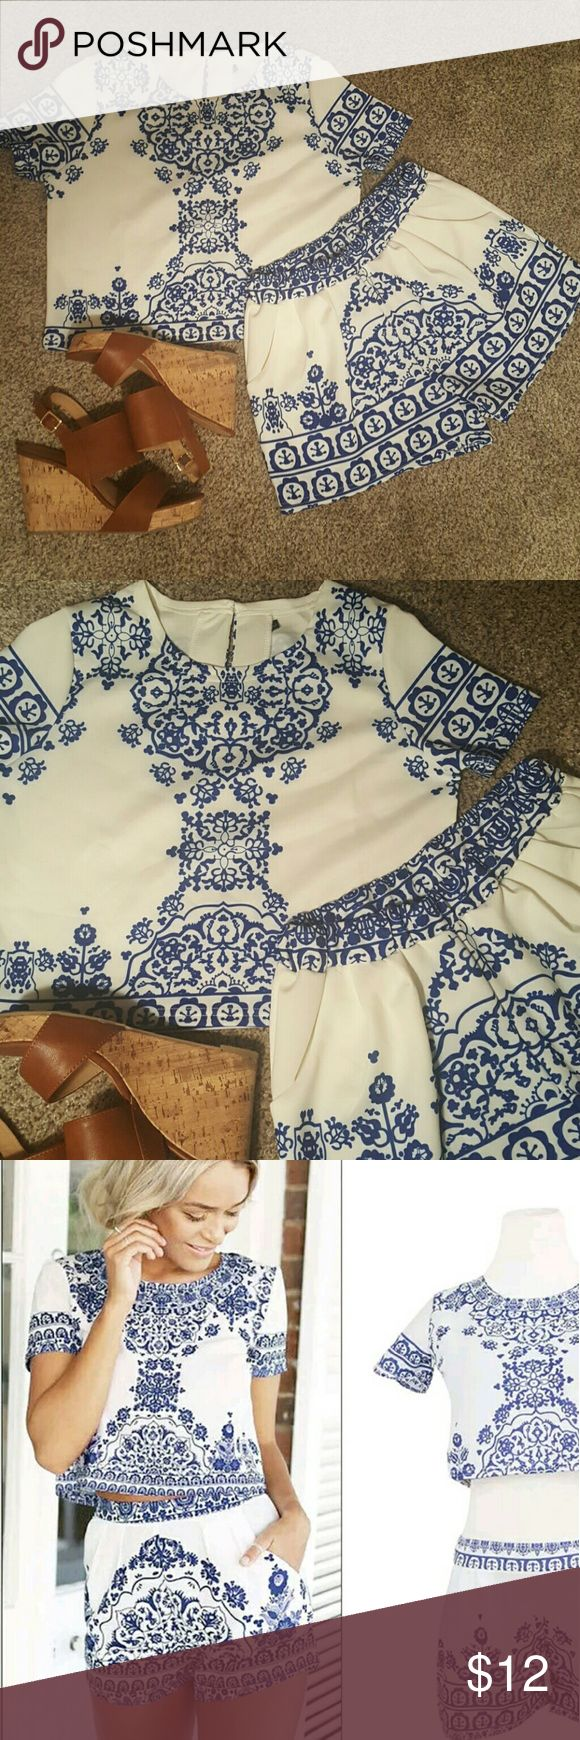 Blue and White Porcelain Crop Top and Shorts Set Adorable Blue and White Crop Top and Shorts Set Worn only once during a trip Crop top is a little longer and fits like the model in the 3rd pic.  Says size Large but it fits like a Medium Tops Crop Tops